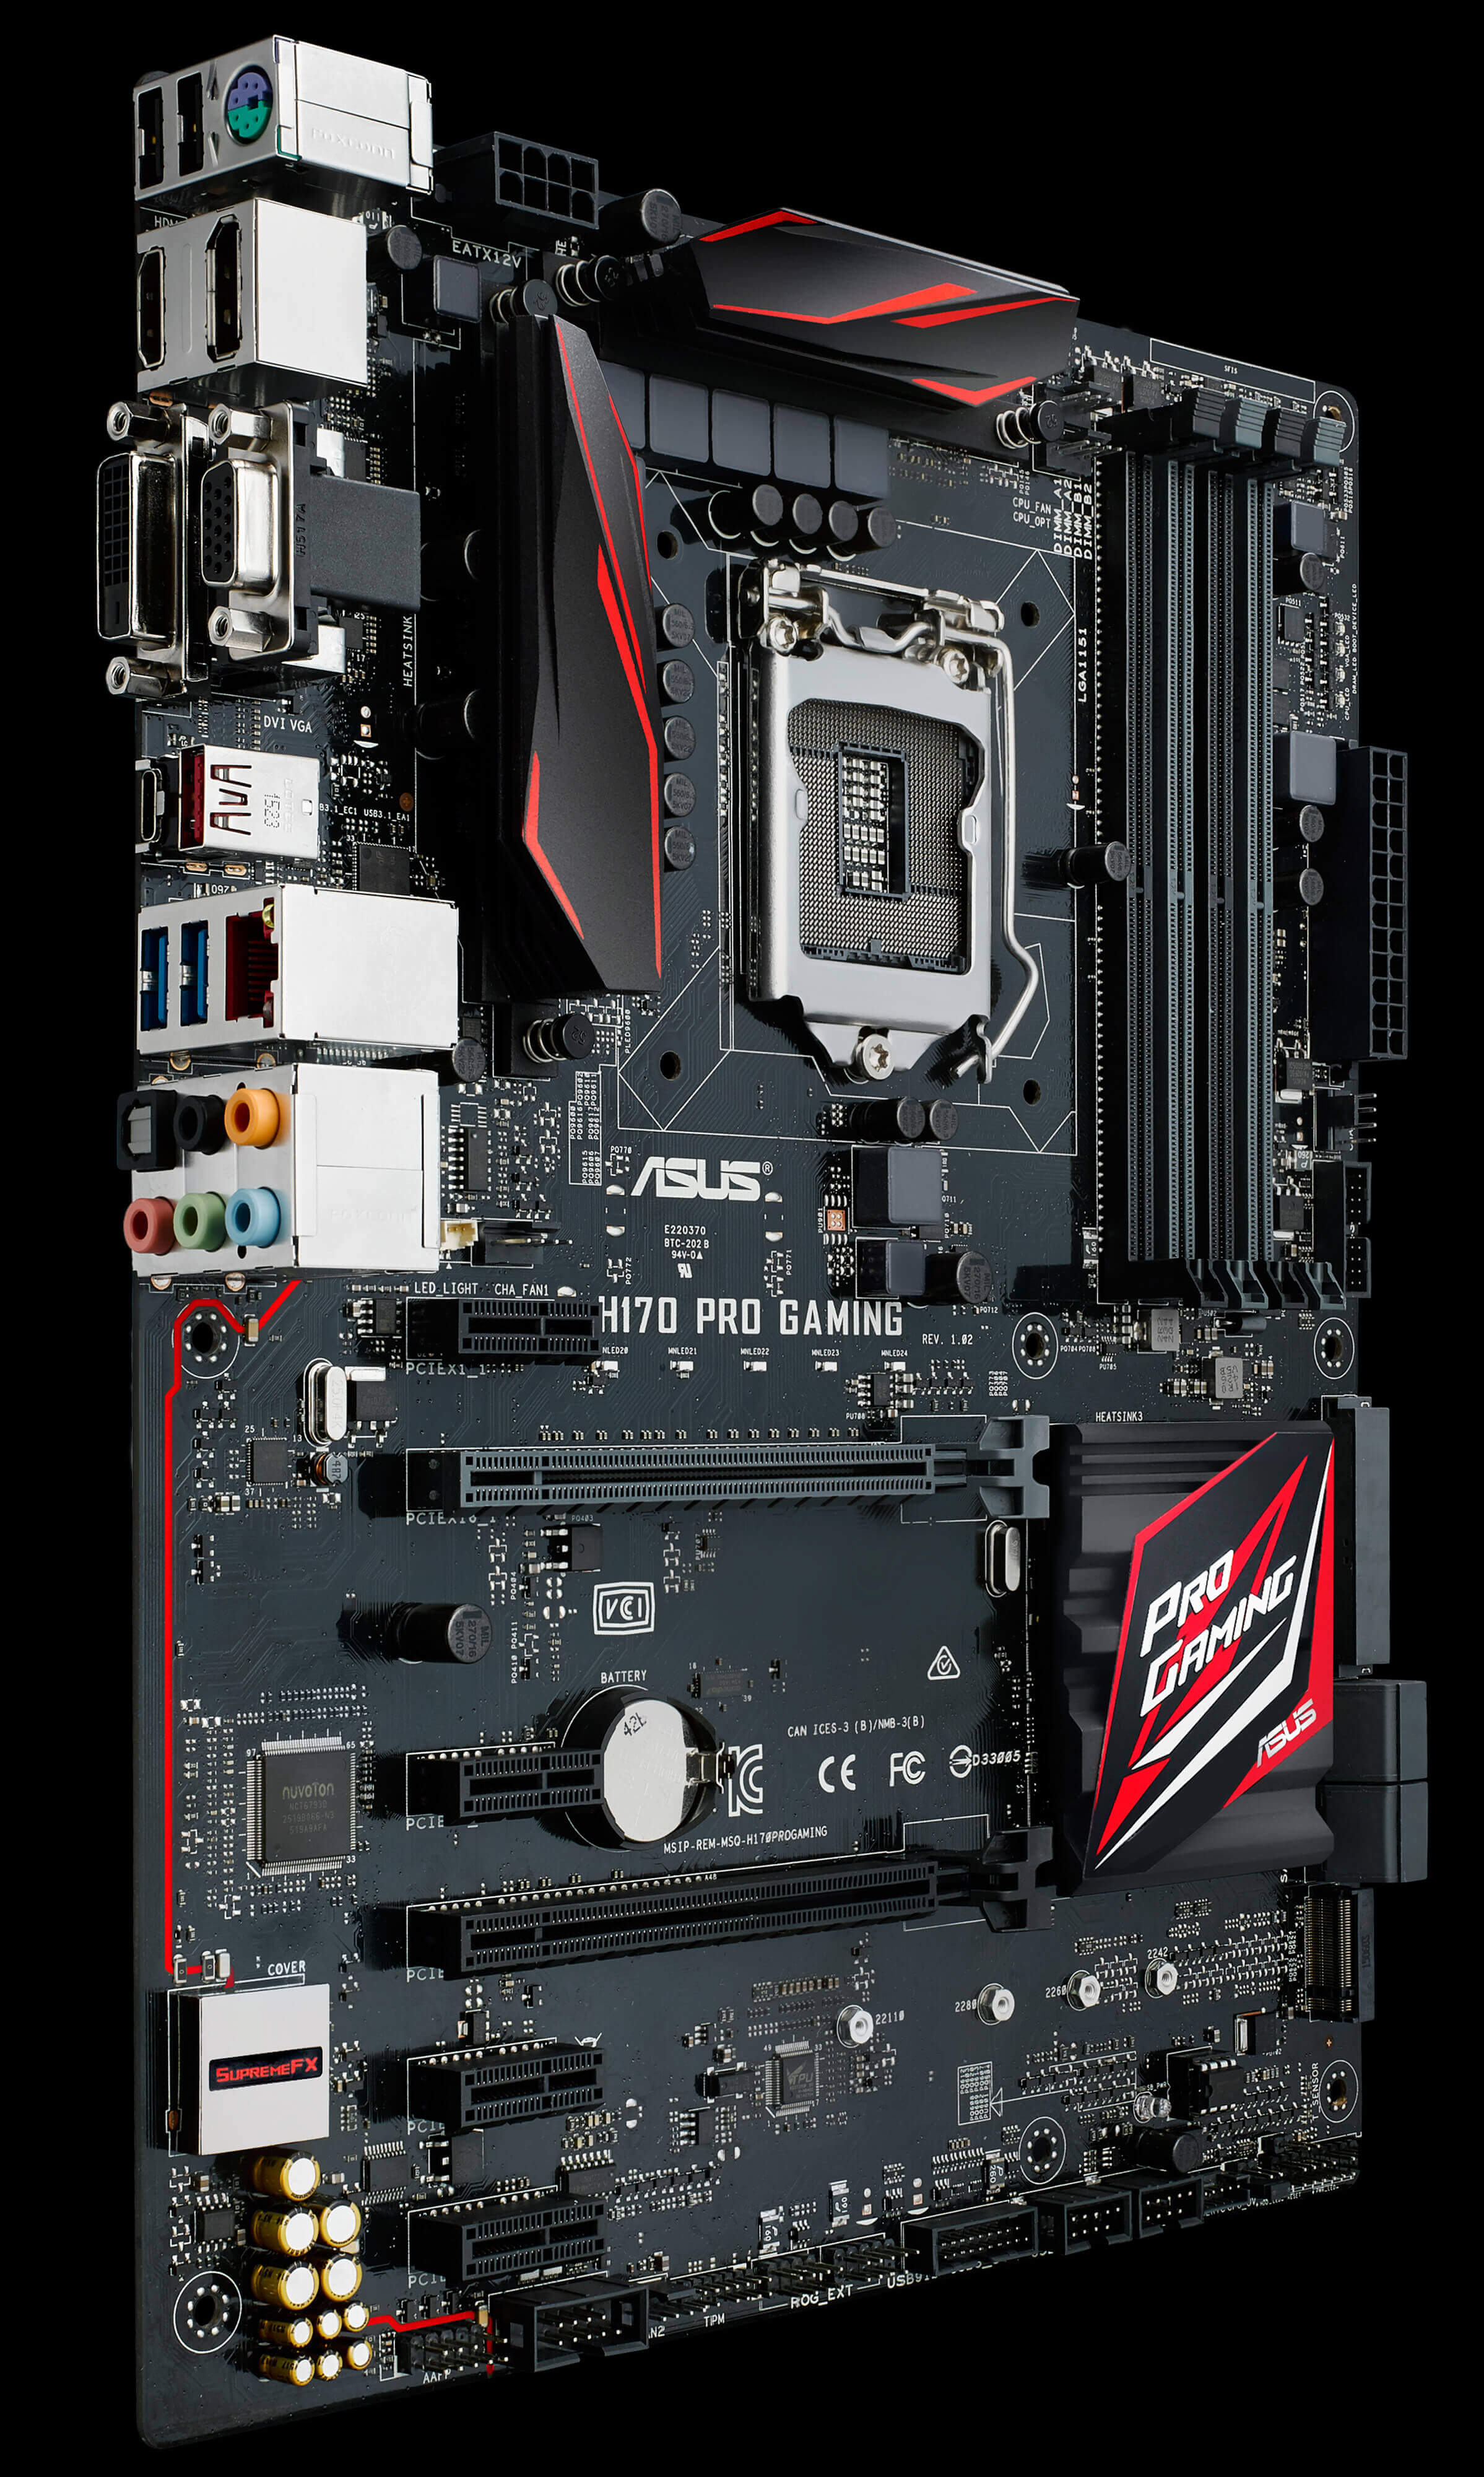 ASUS H170 PRO Gaming Intel Graphics Driver for PC